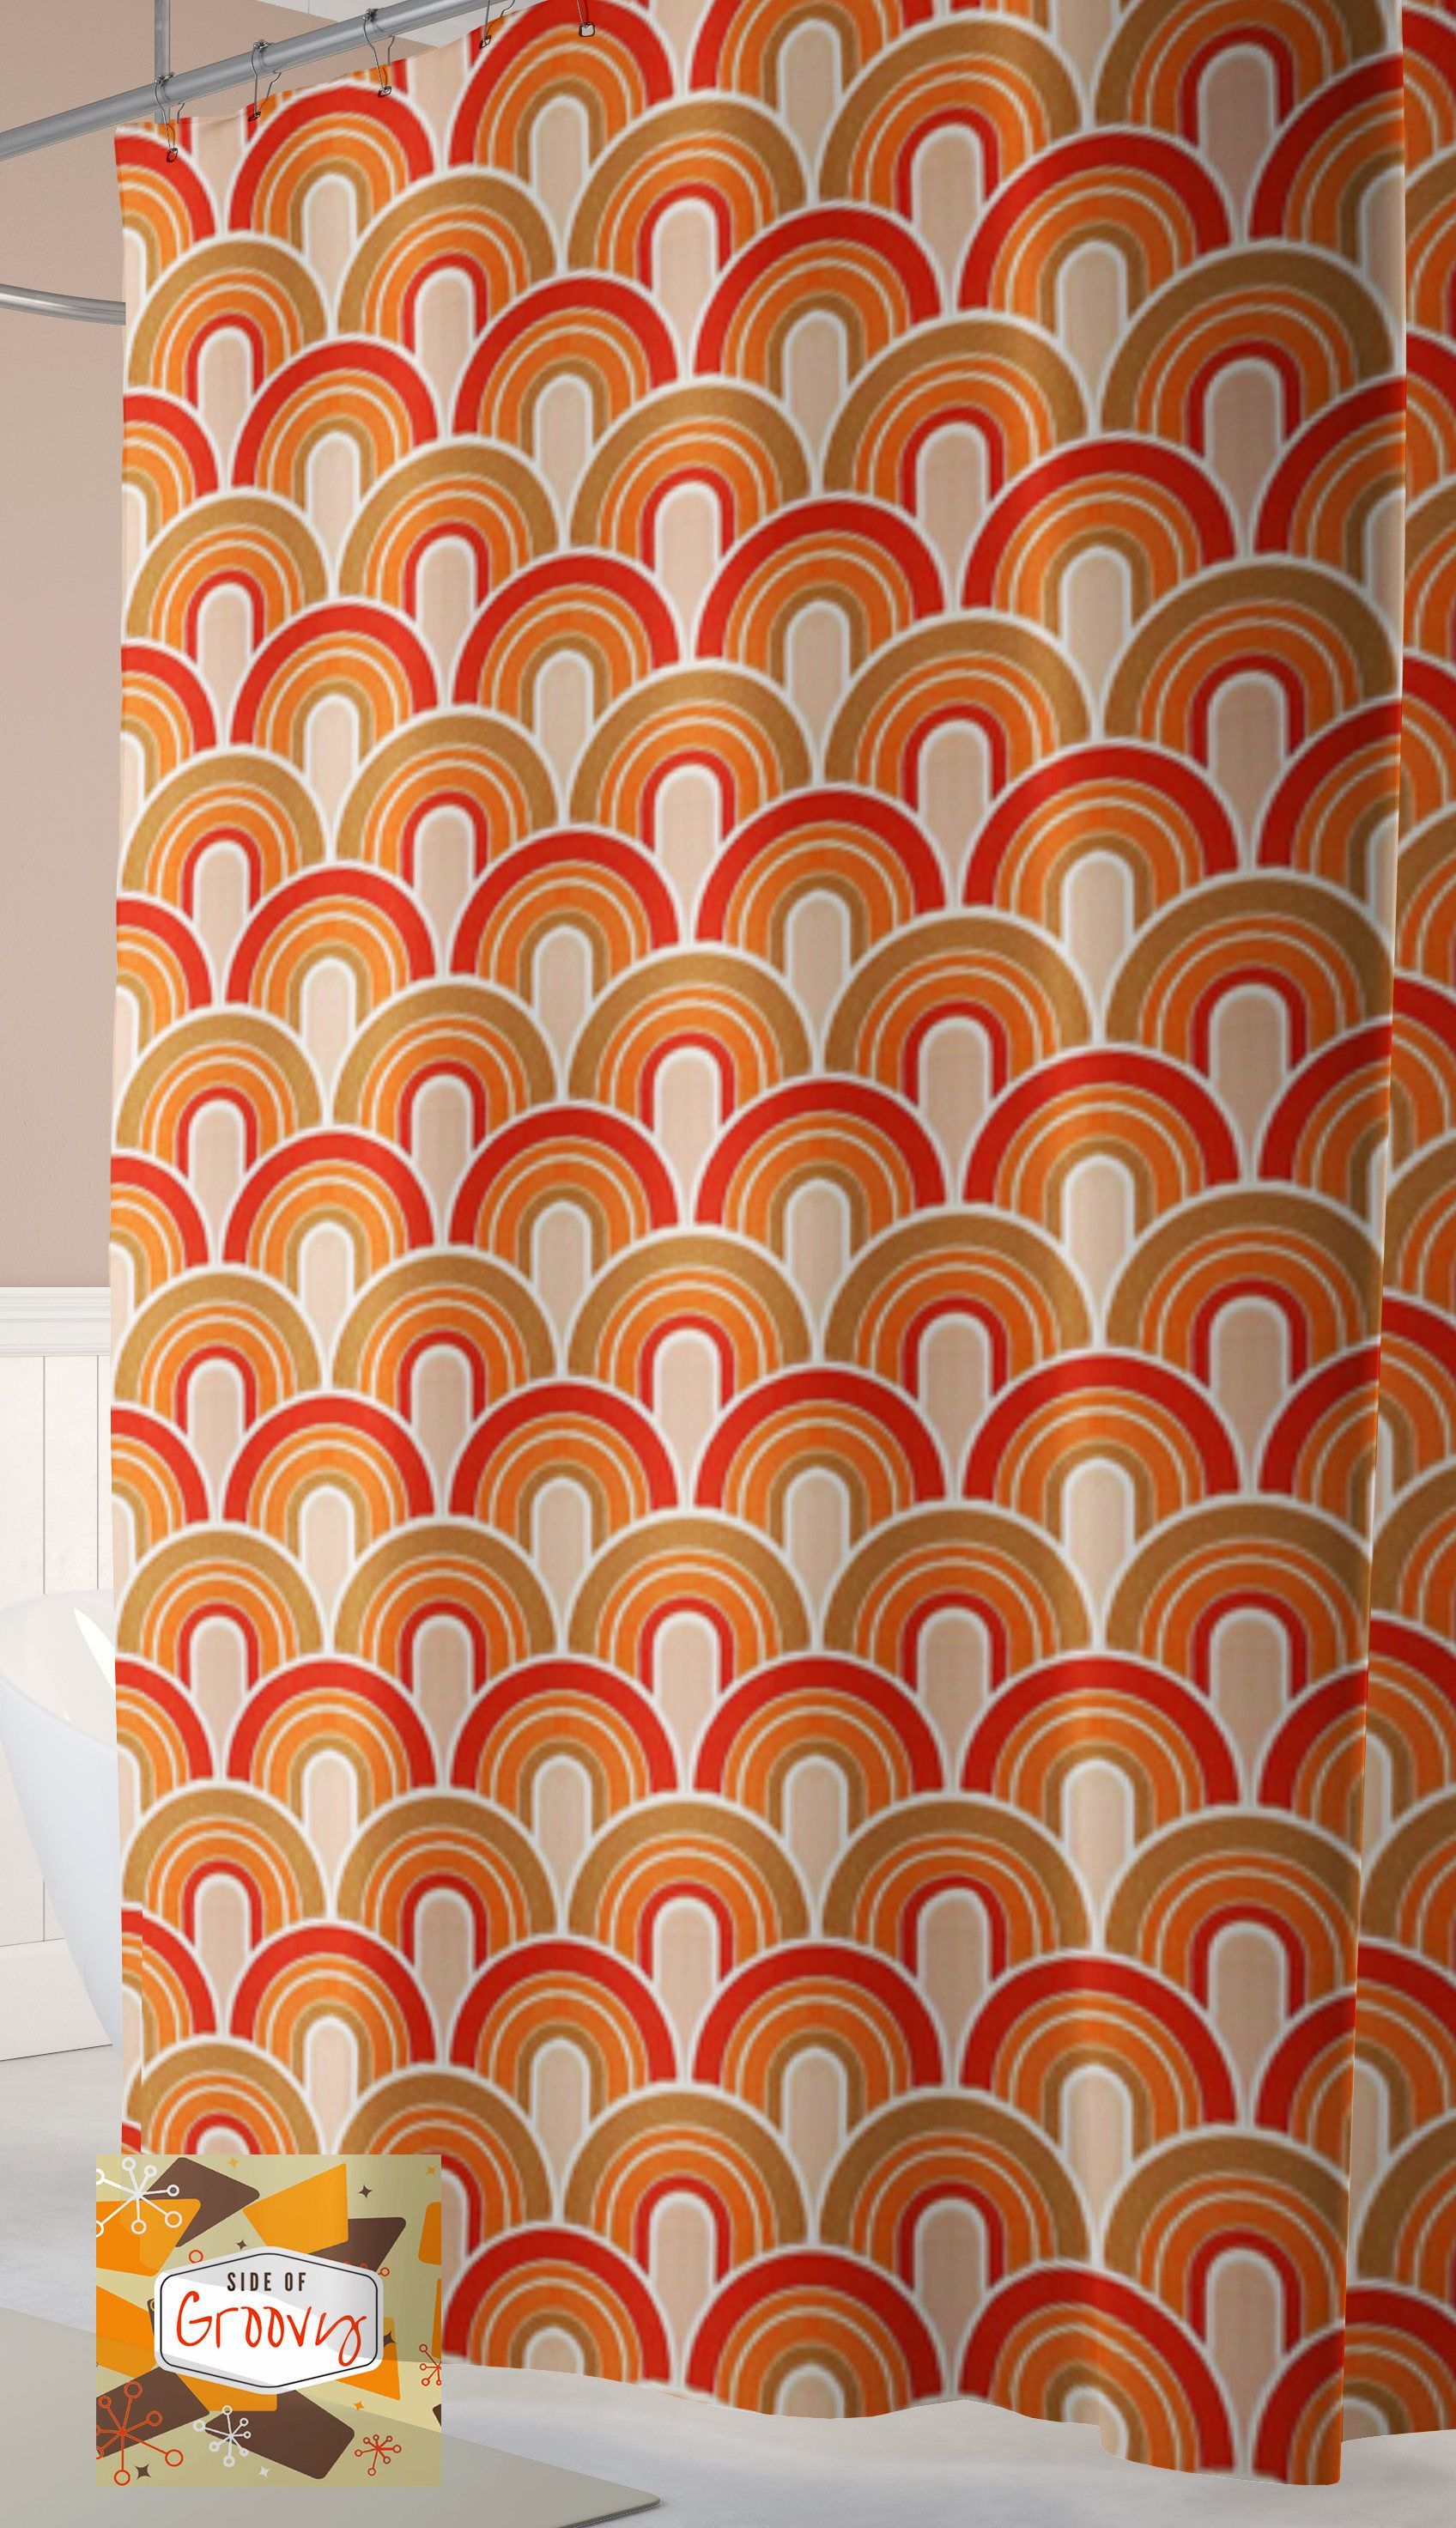 Retro Shower Curtain 70s Cool Mid Century Rainbow Vintage By Sideofgroovy